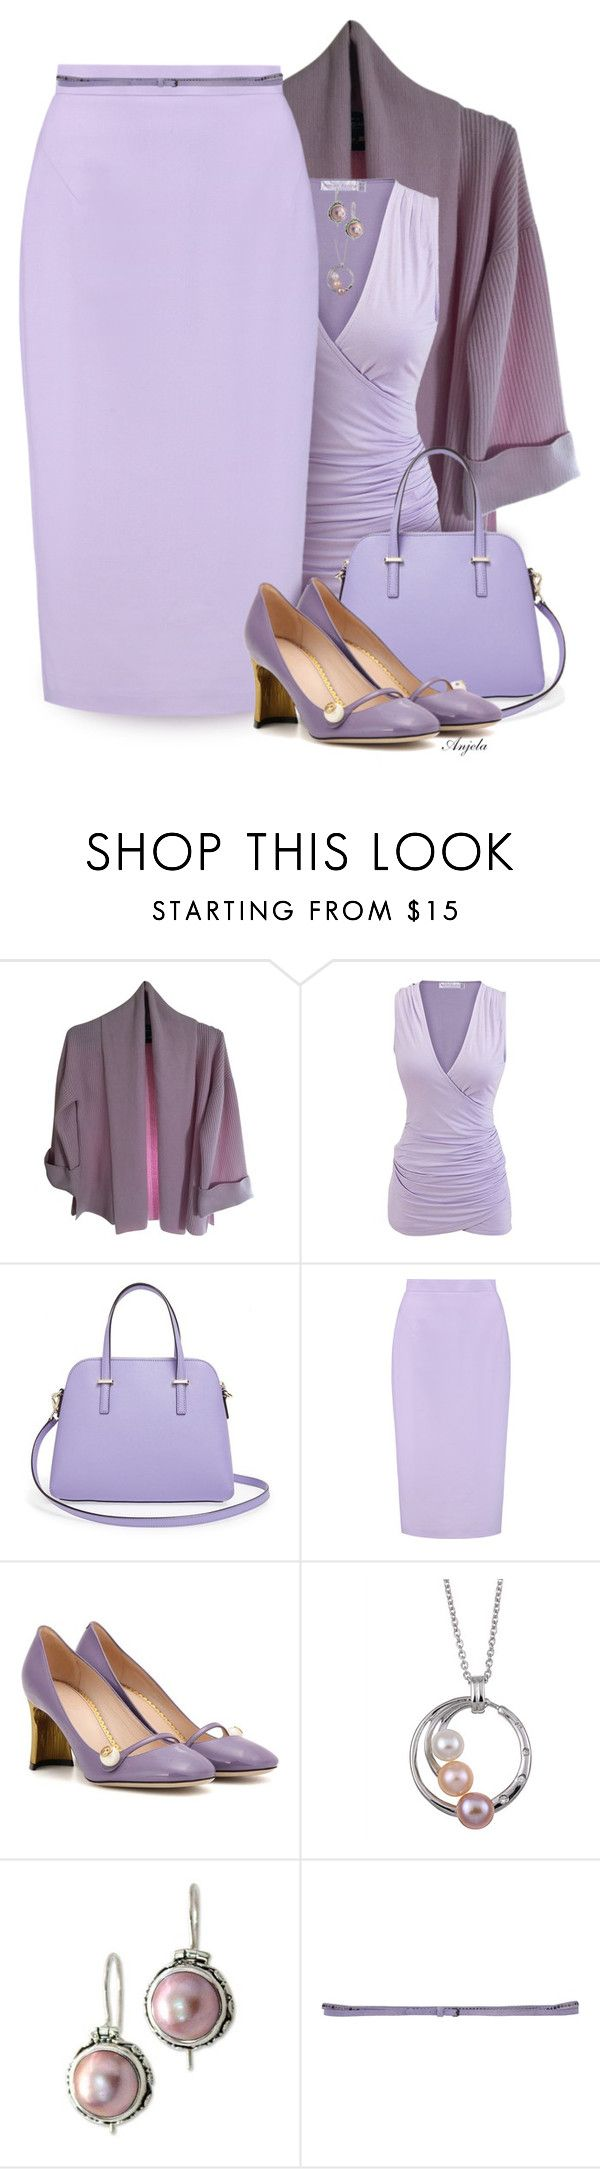 """Lilac"" by anjelakewell ❤ liked on Polyvore featuring St. John, Kate Spade, Raoul, Gucci, Kabella Jewelry, NOVICA and Manila Grace"